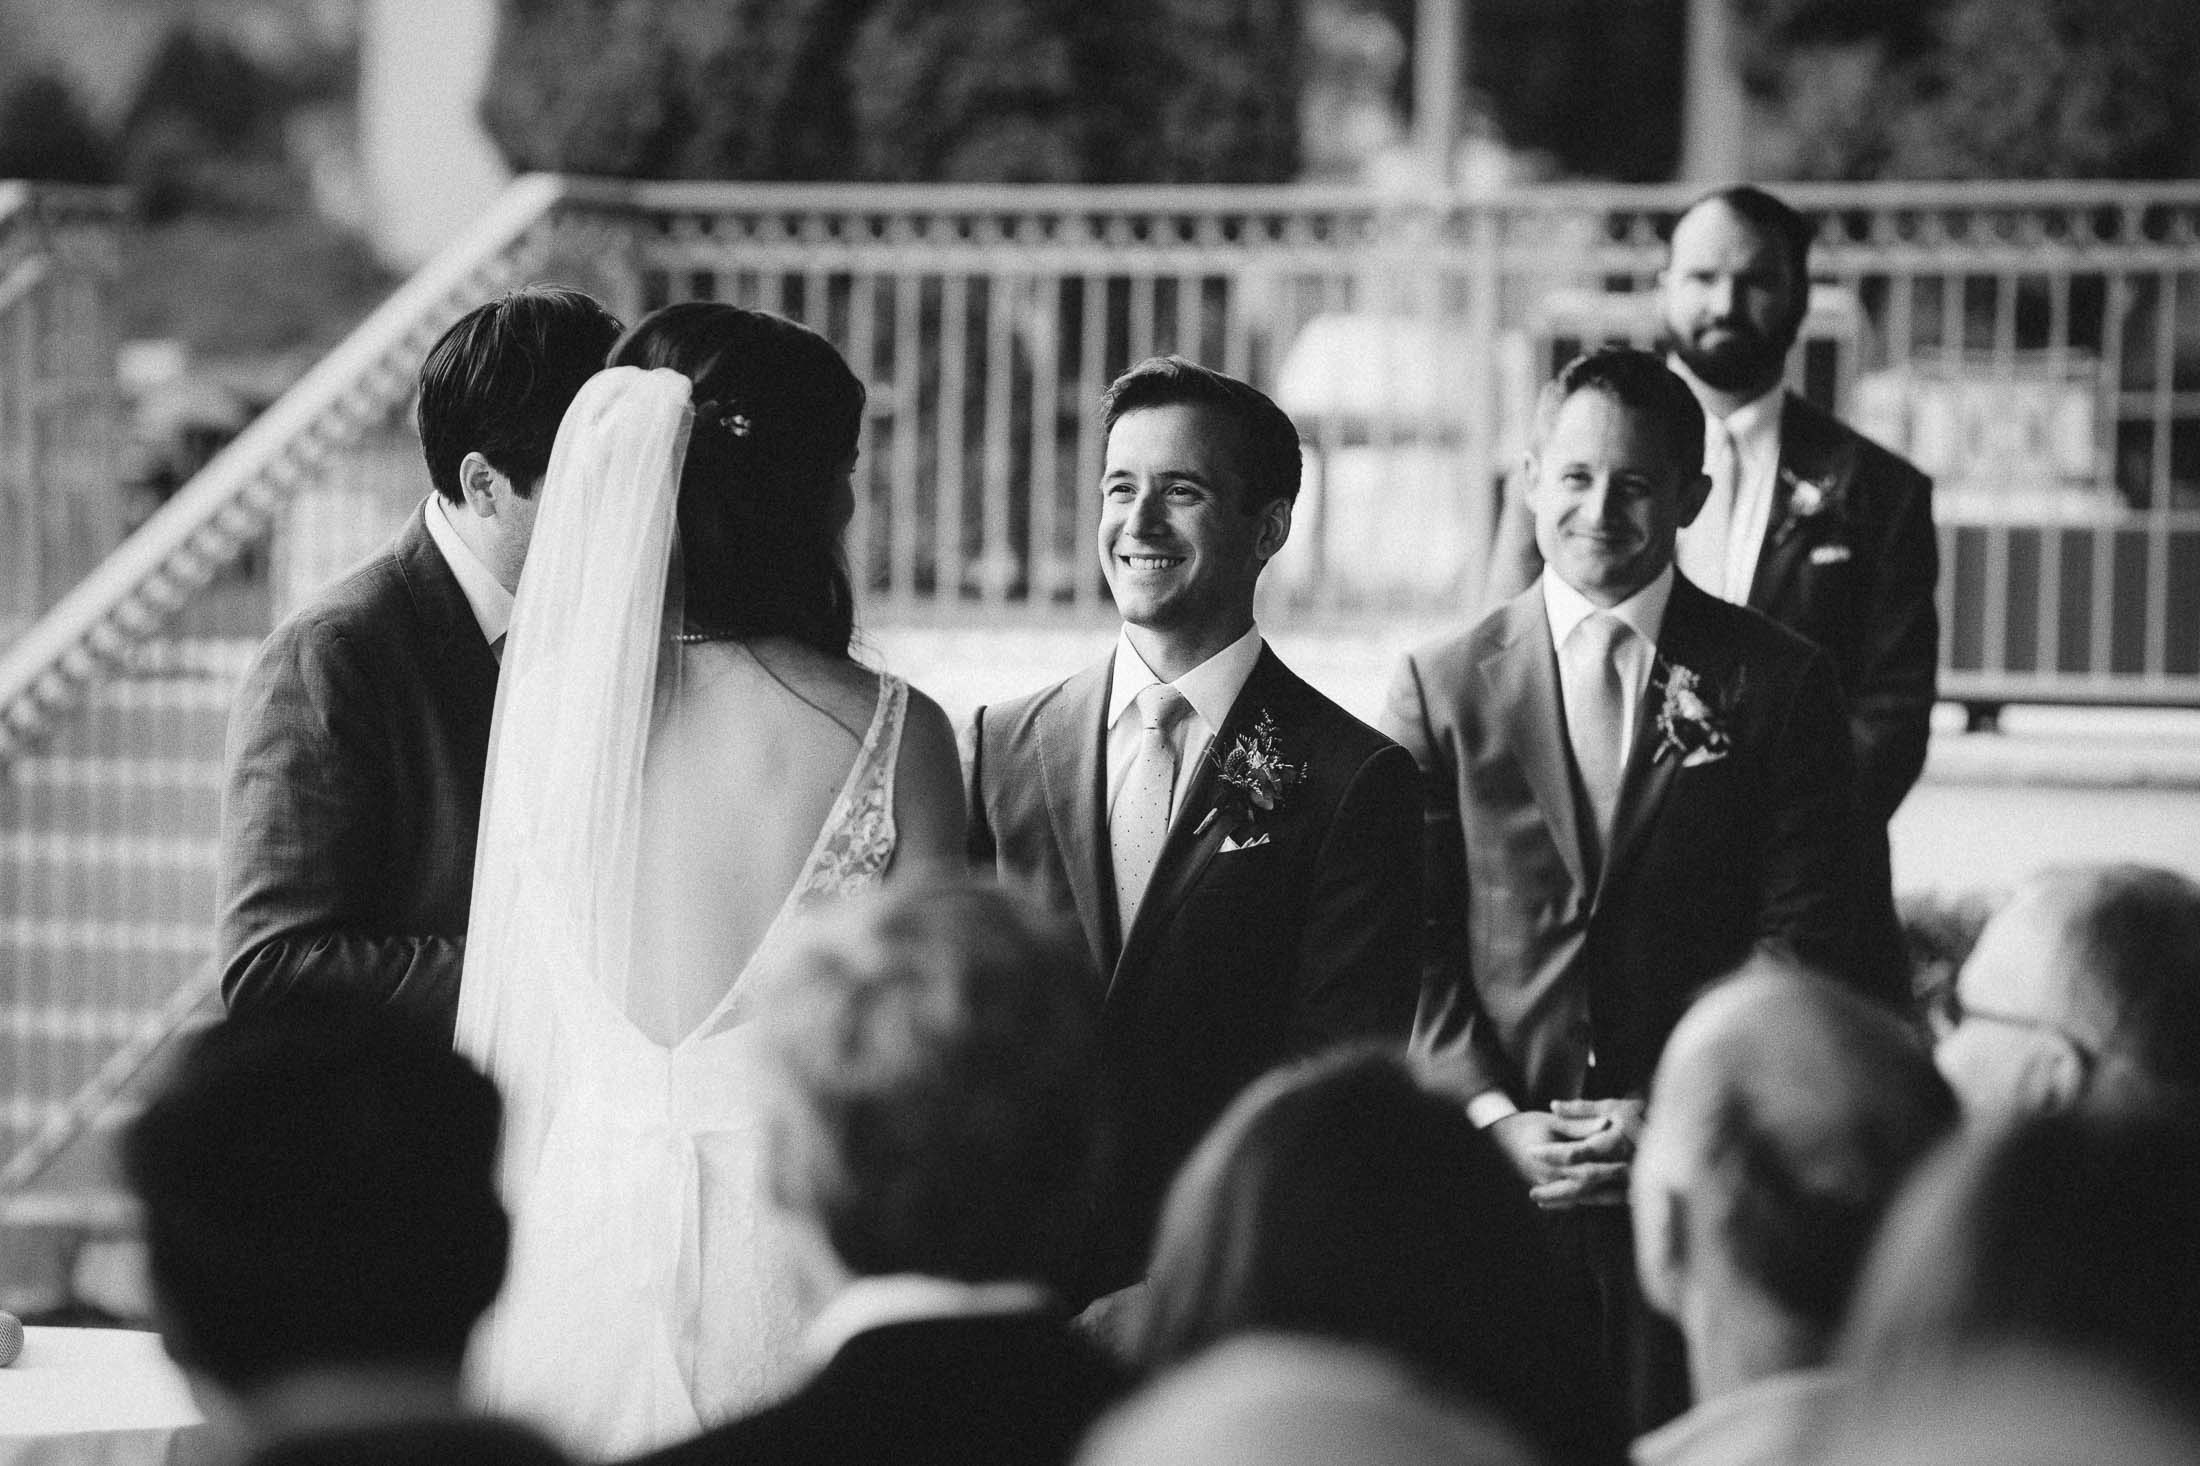 Black and white photo of bride and groom standing at the altar during ceremony.